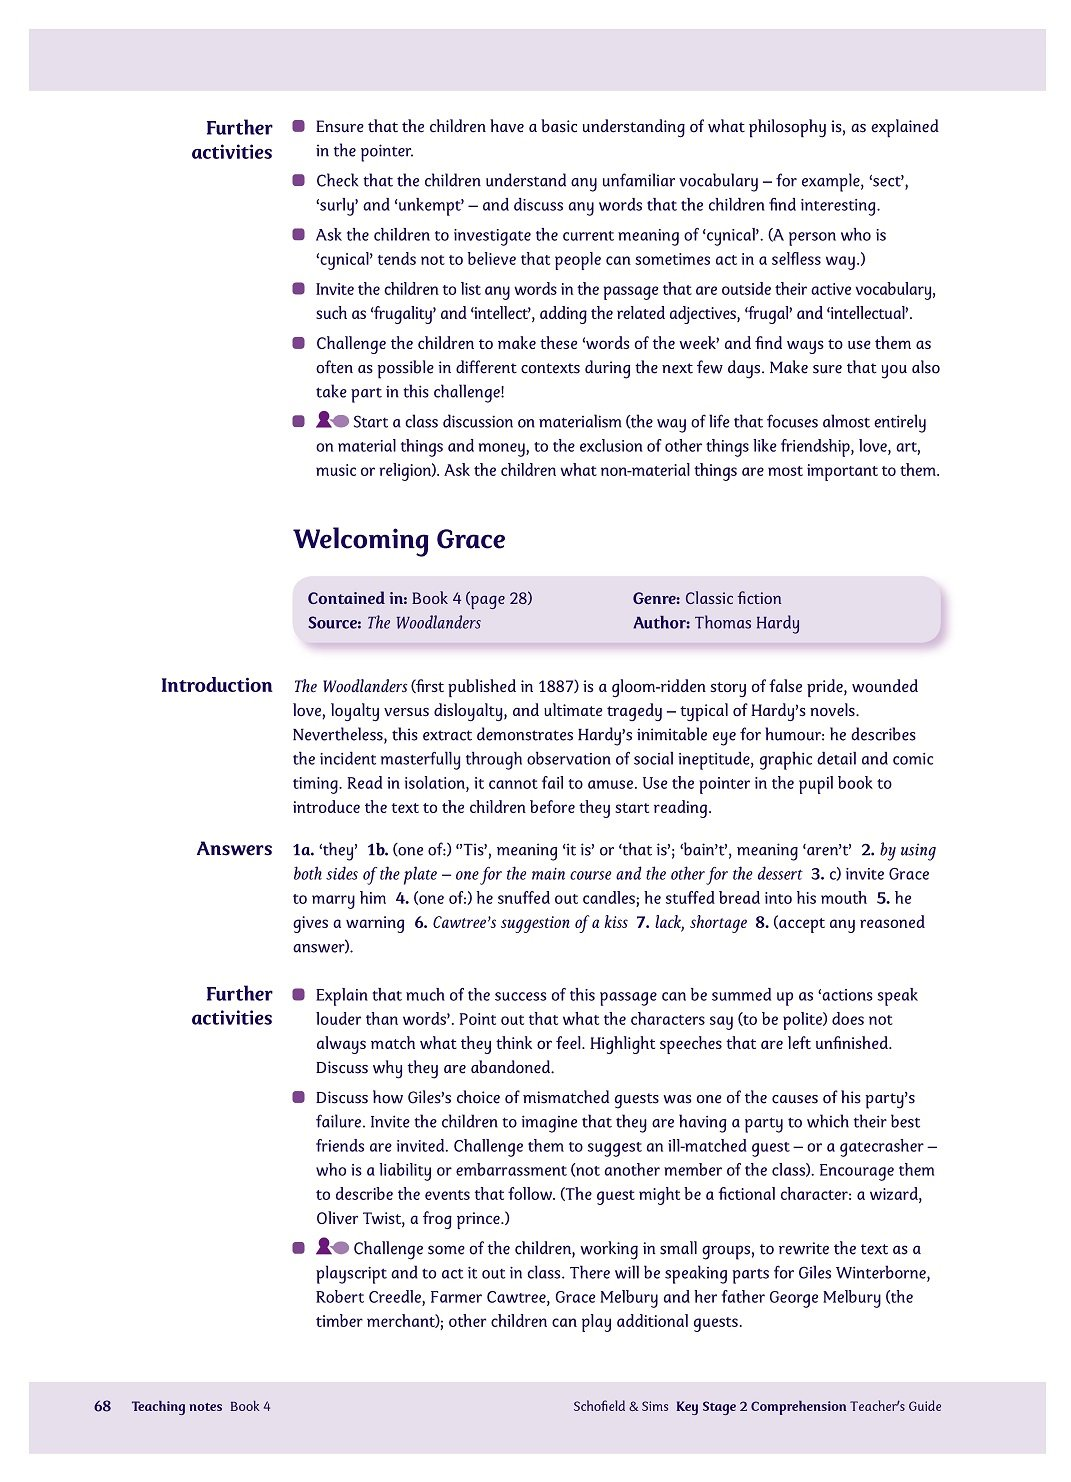 Workbooks key stage 2 workbooks : KS2 Comprehension Teacher's Guide: Years 3-6, Ages 7-11 (for the ...